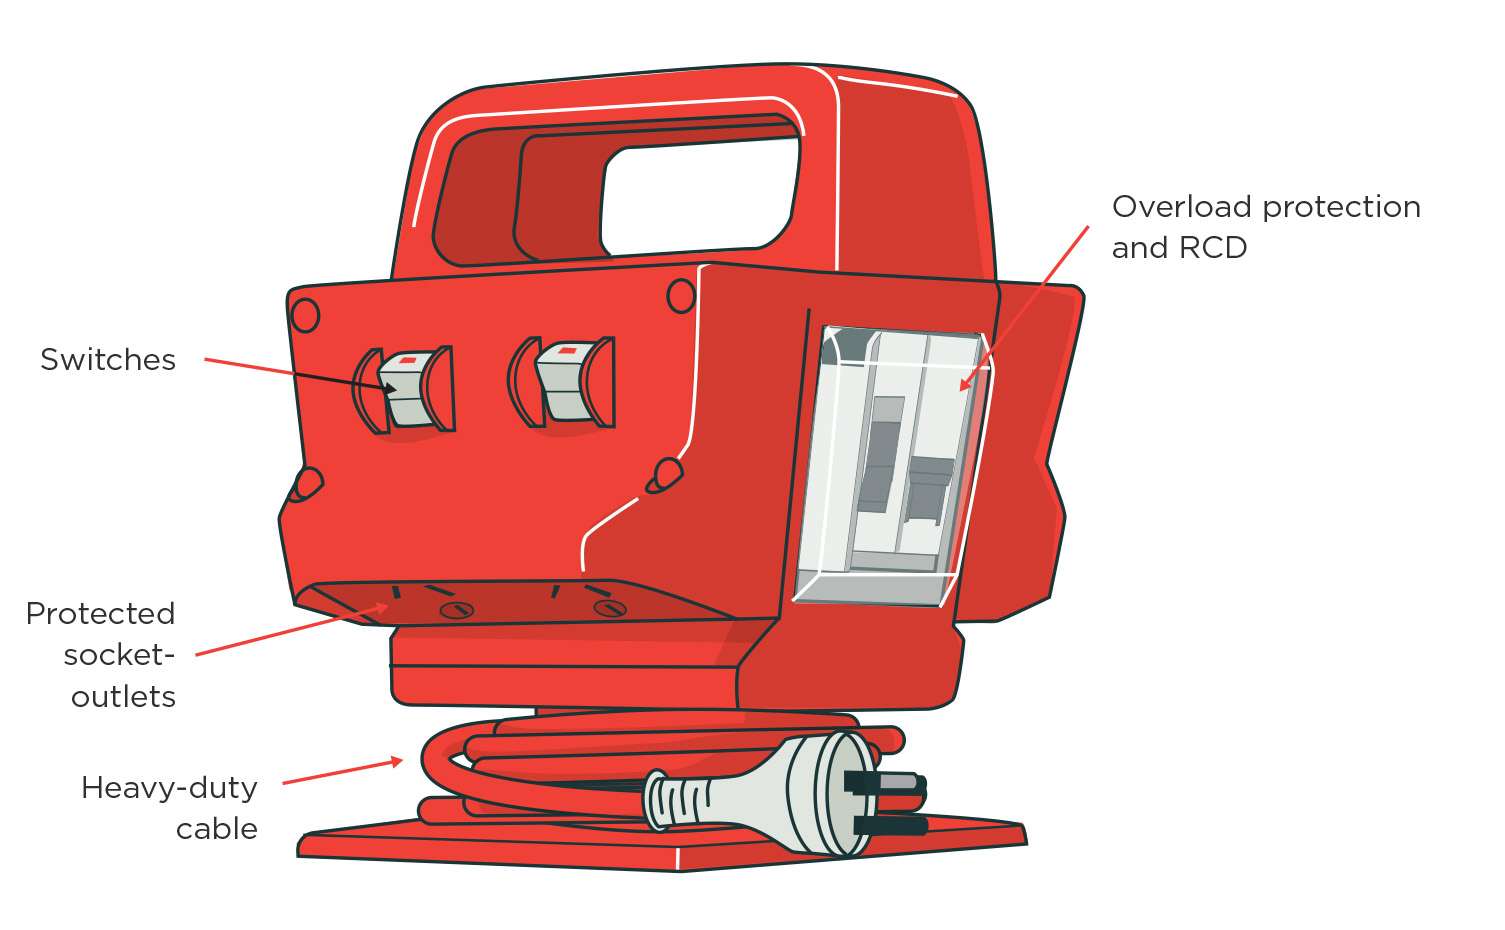 [Image] Red PSOA unit showing carry handle, power cord, plug and base with labels and red arrows pointing to all components.